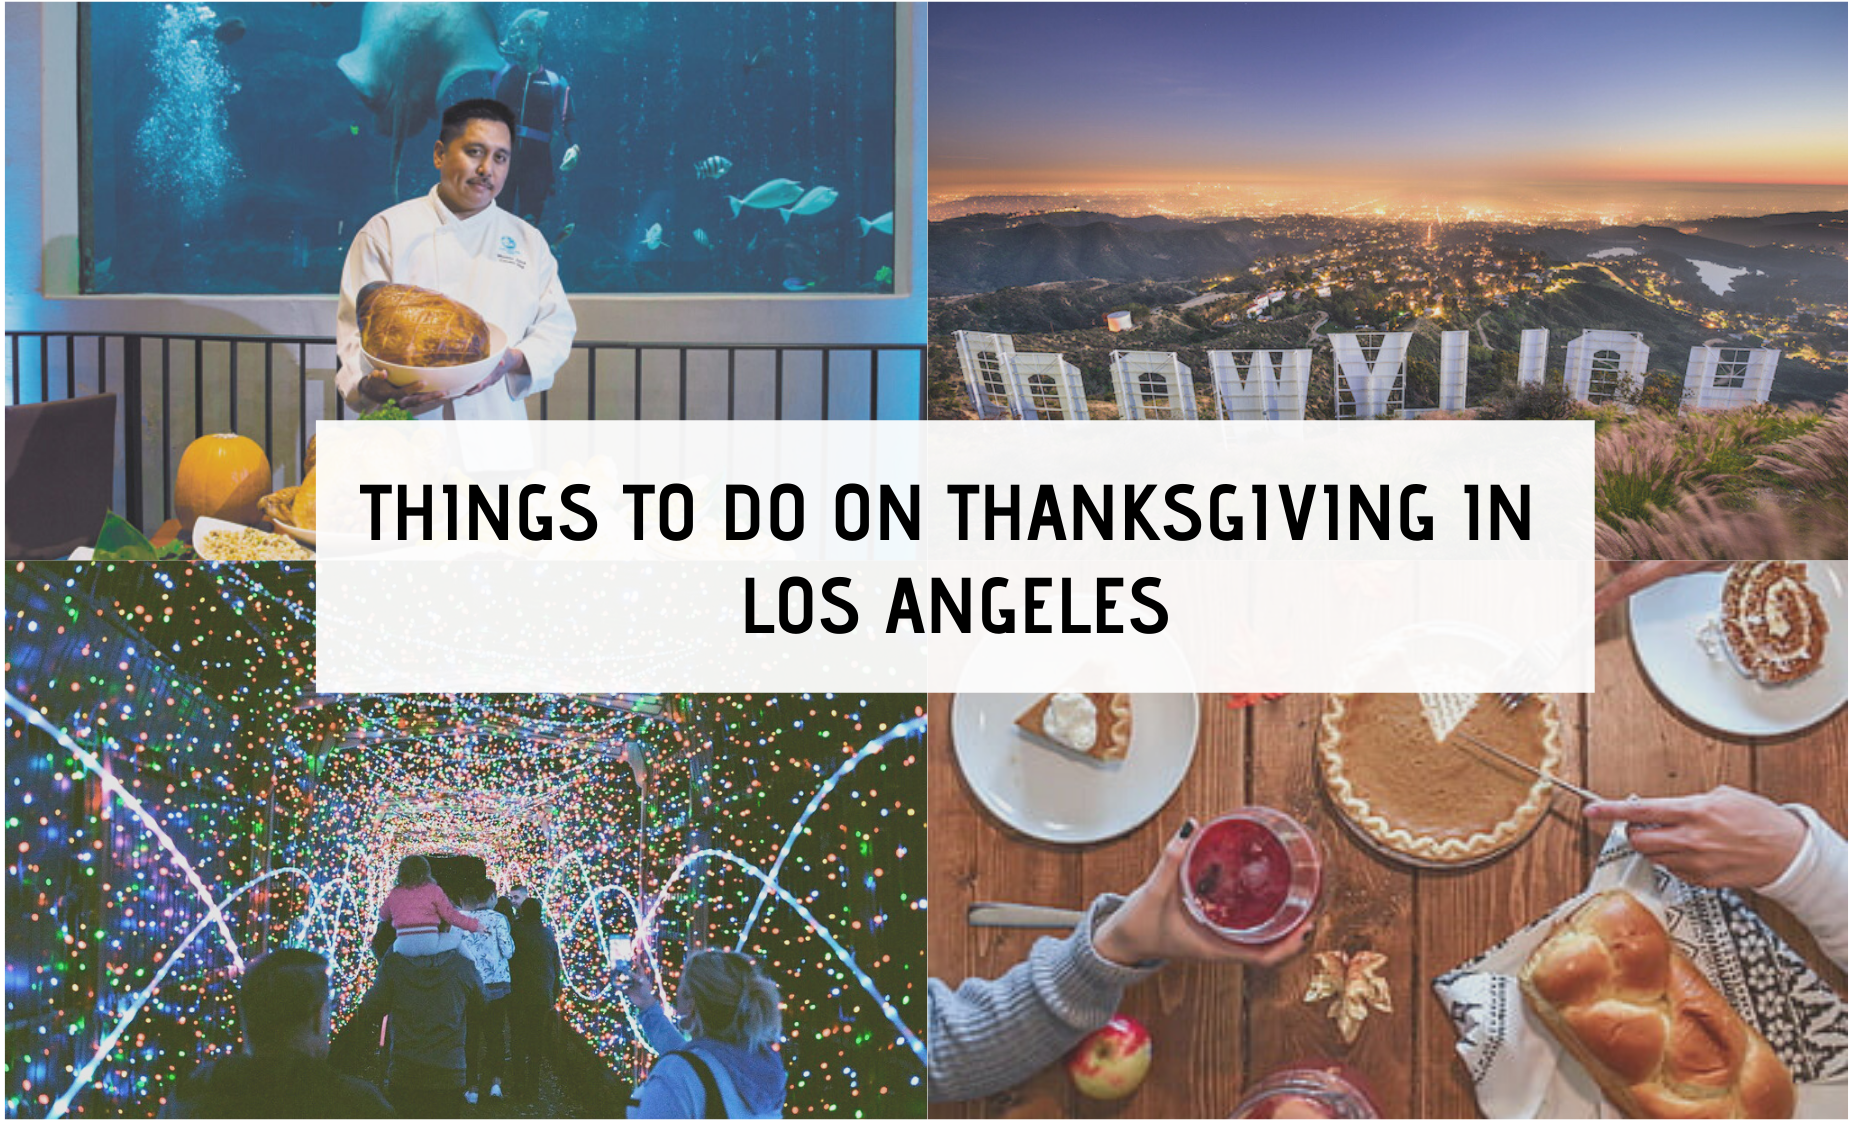 A Four photo collage of things to do in Los Angeles on Thanksgiving with a text overlay.